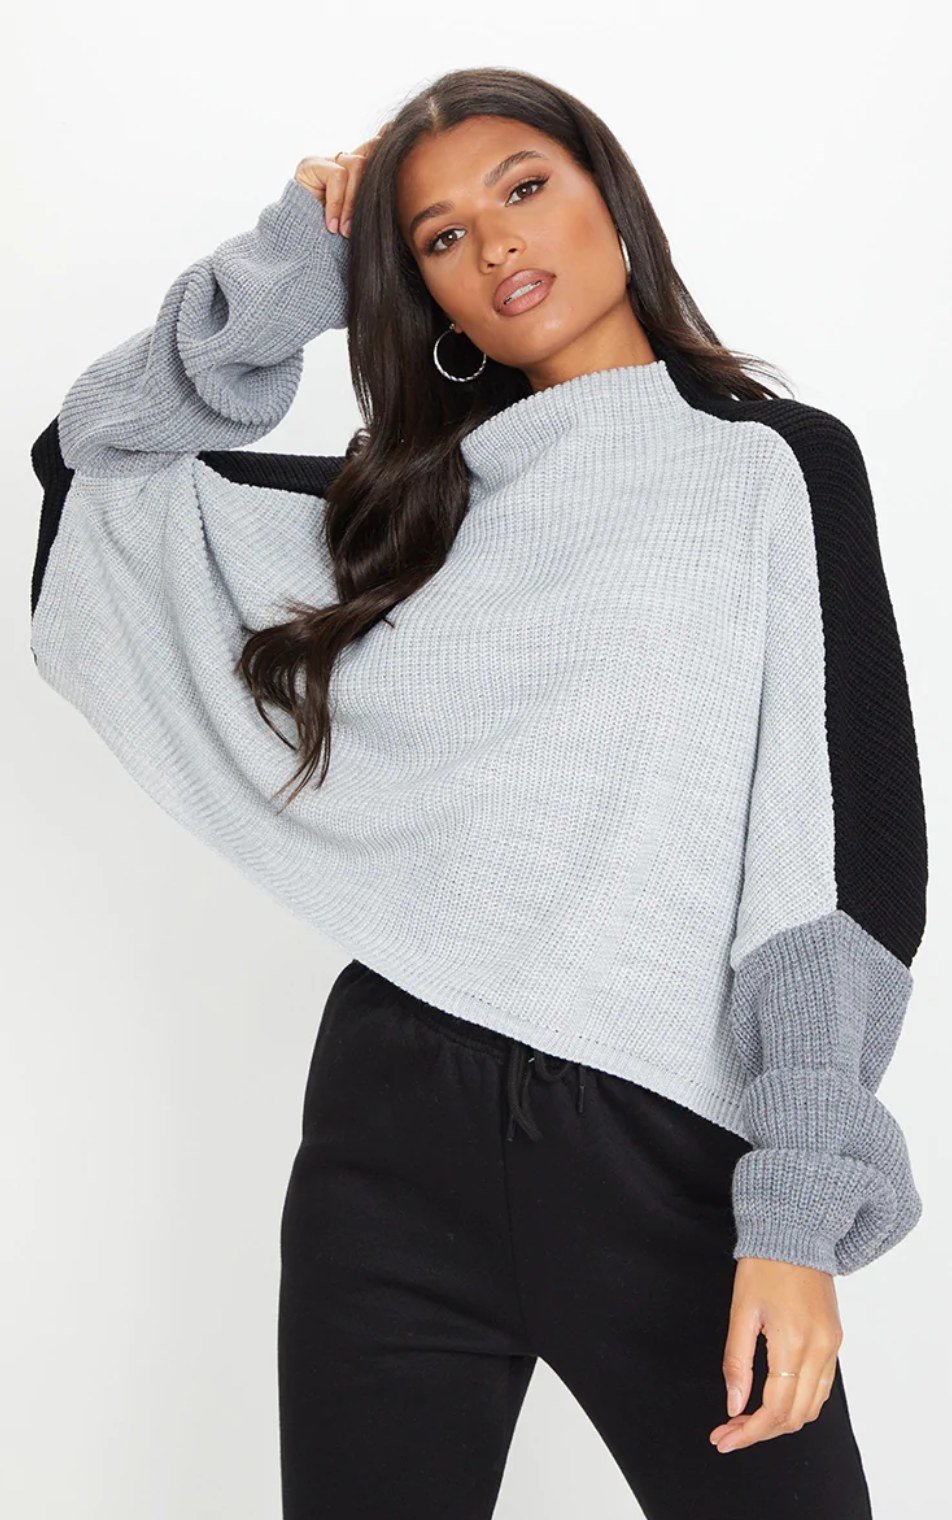 model wearing the sweater in heather gray with dark gray and black sleeves over black pants